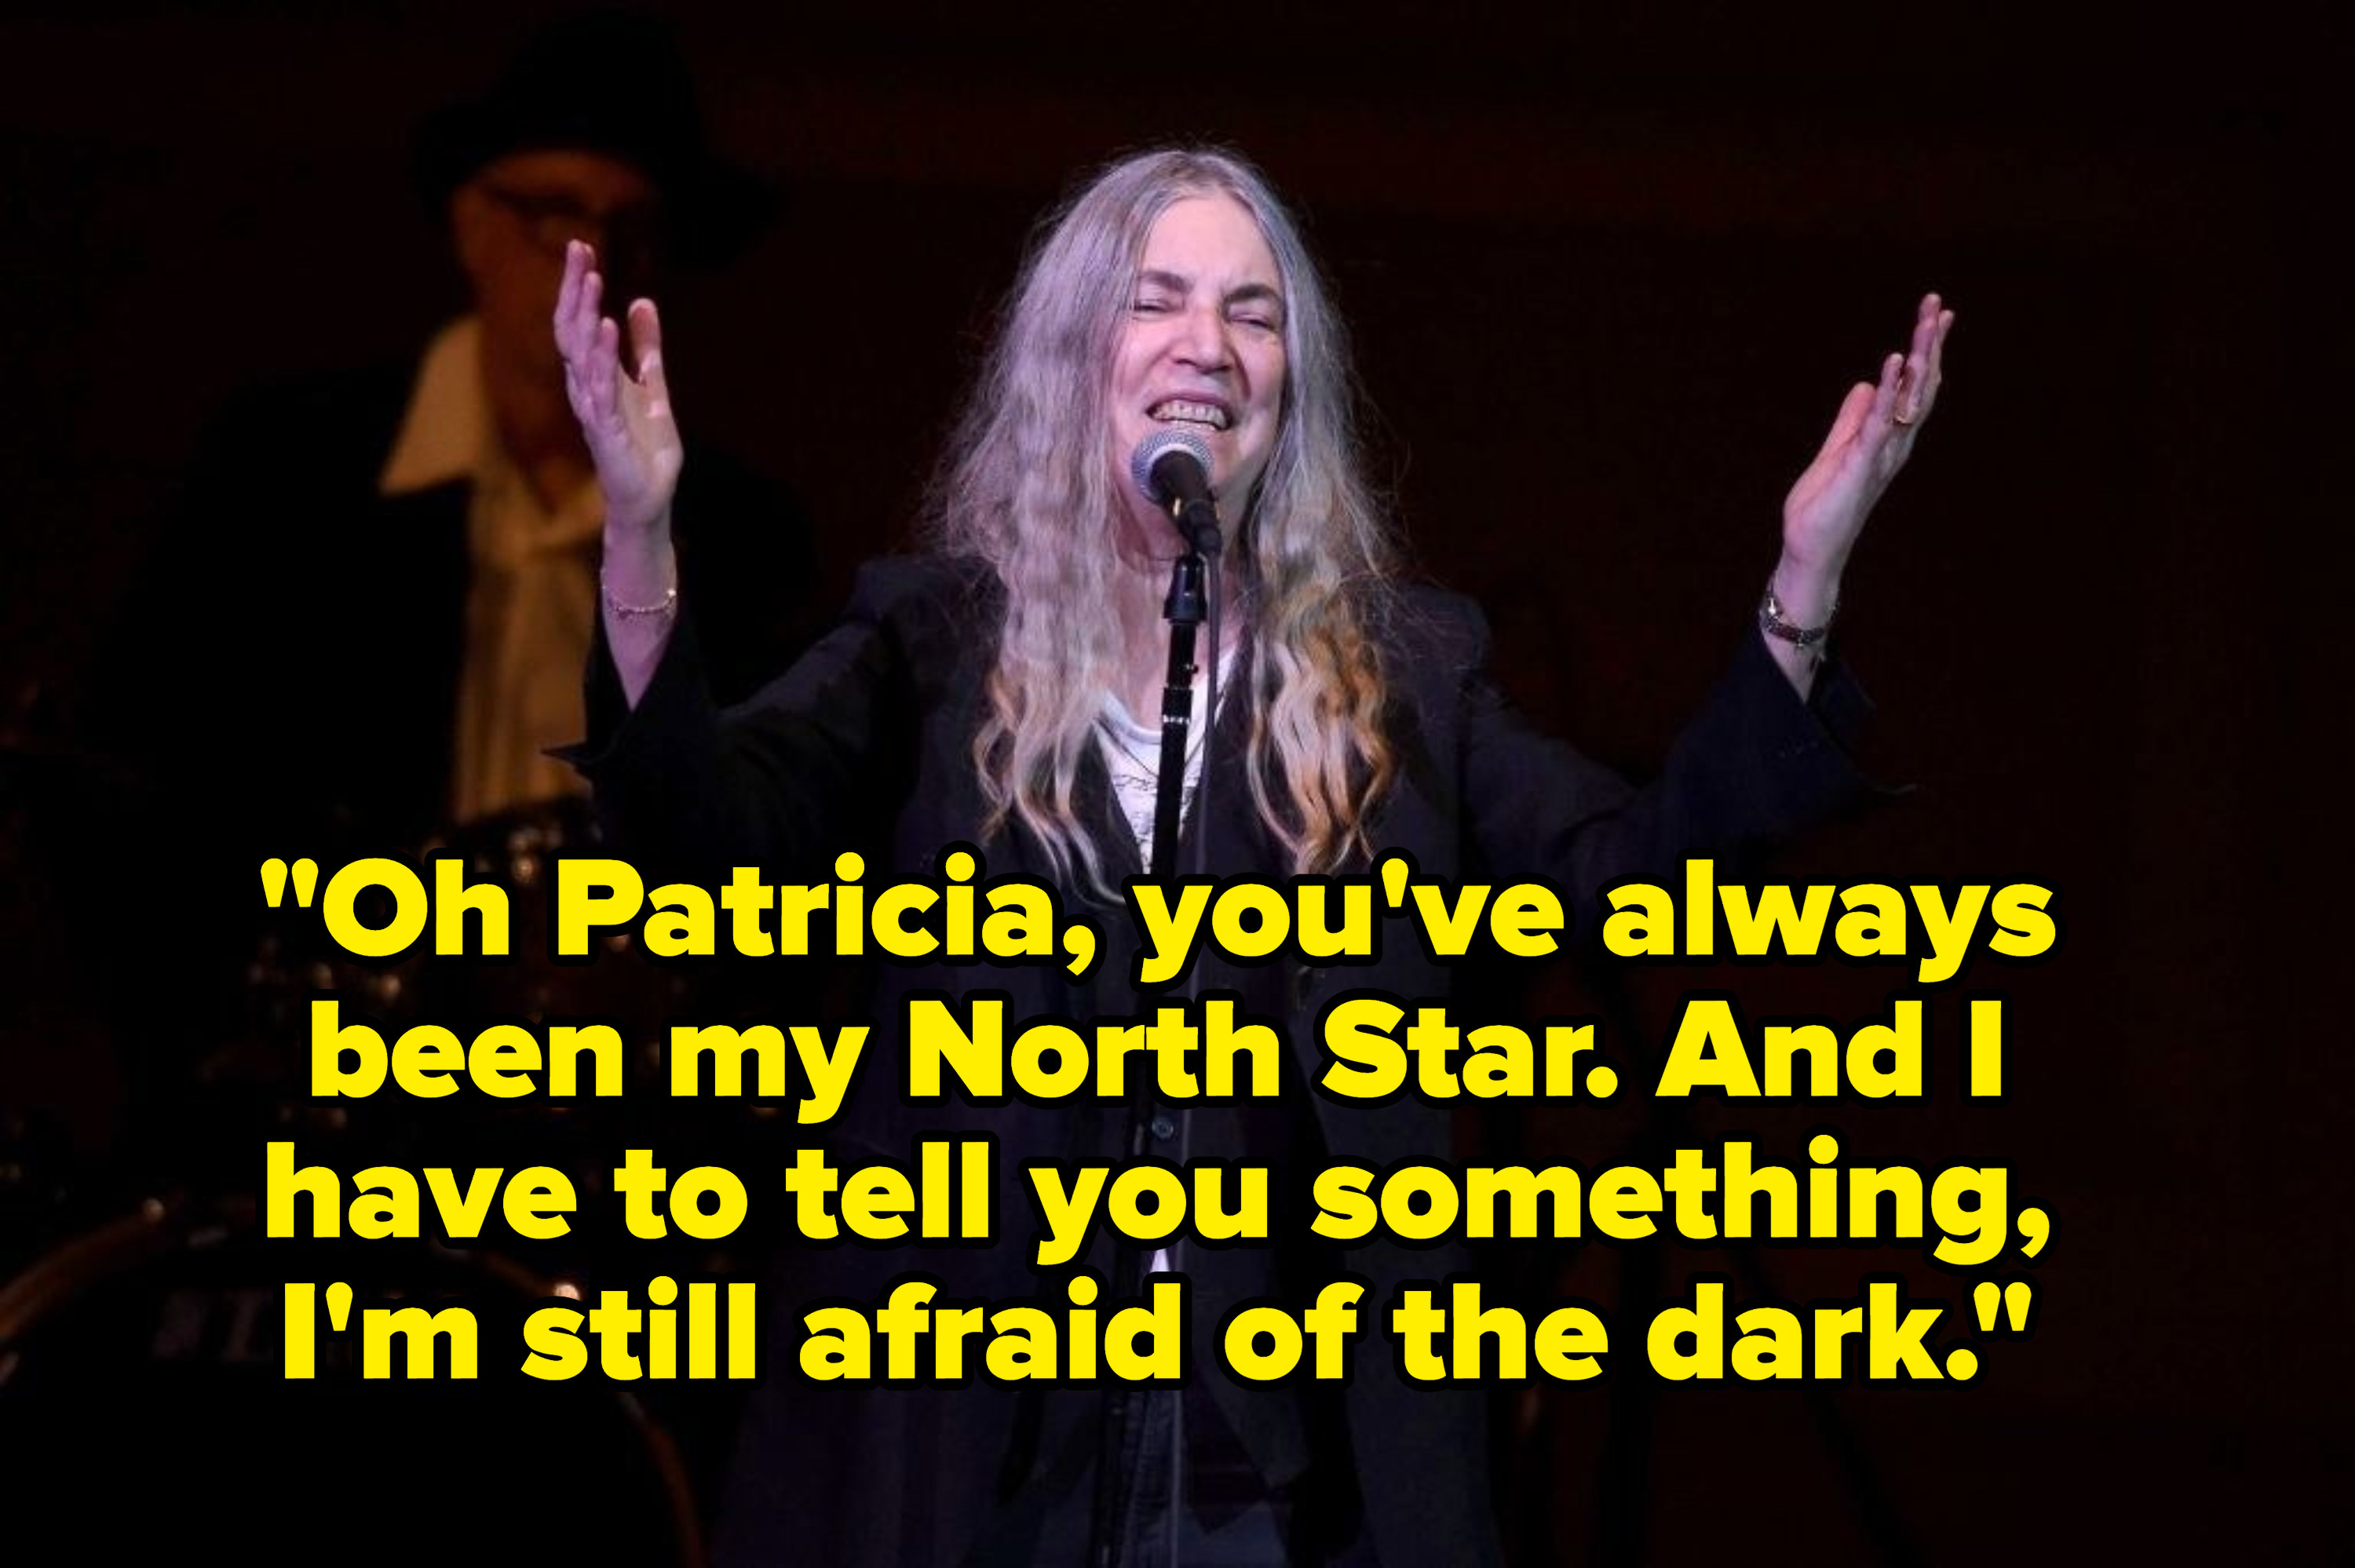 """Patti Smith singing on stage, captioned with the lyric """"Oh Patricia, you've always been my North Star. And I have to tell you something I'm still afraid of the dark."""""""